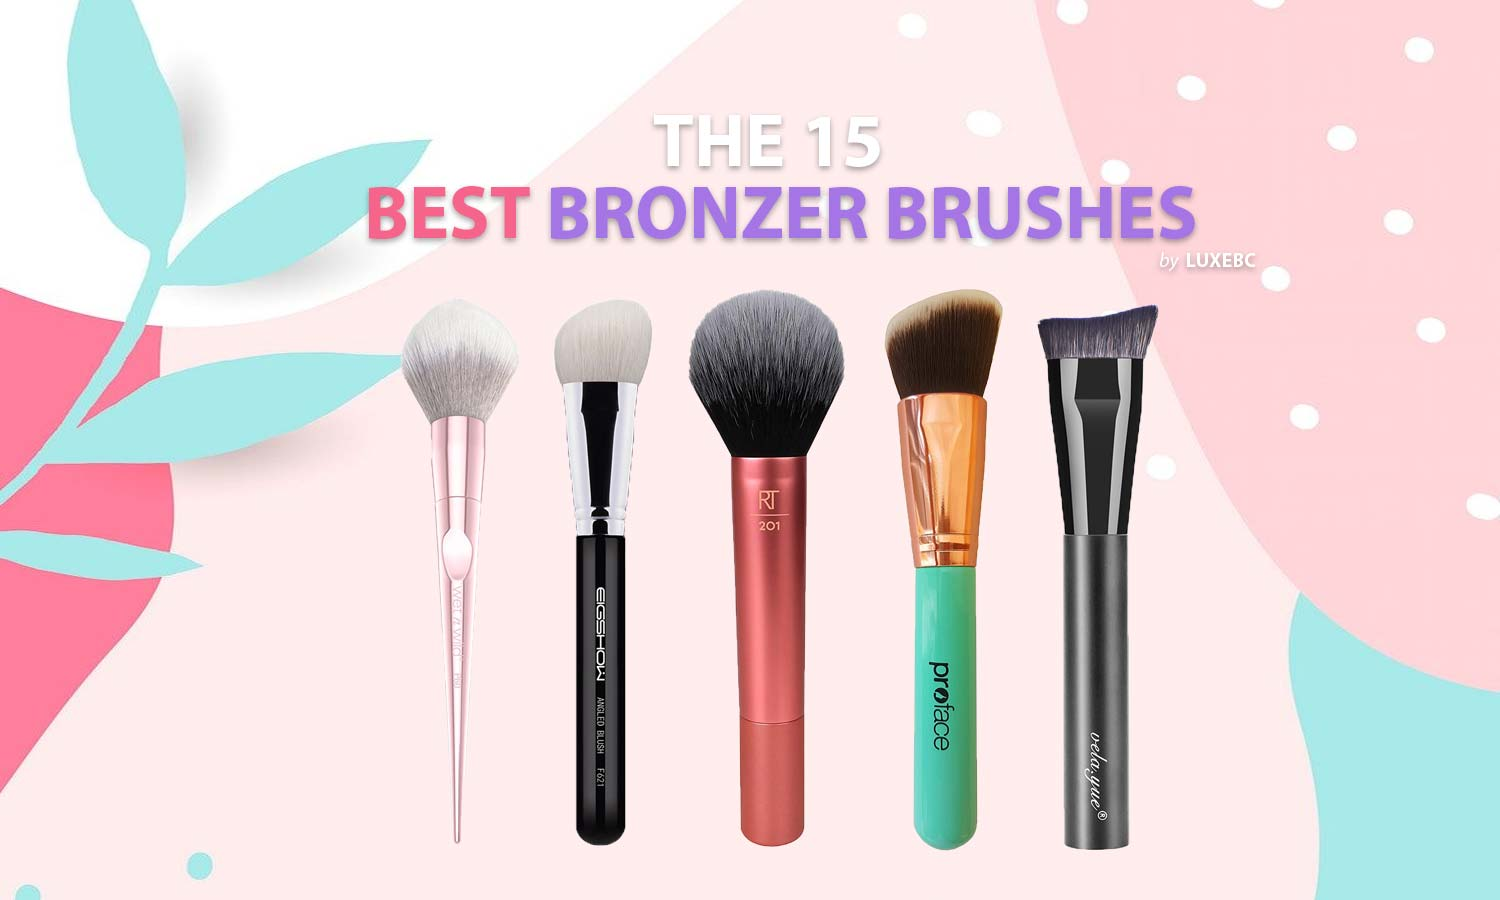 Best bronzer brushes